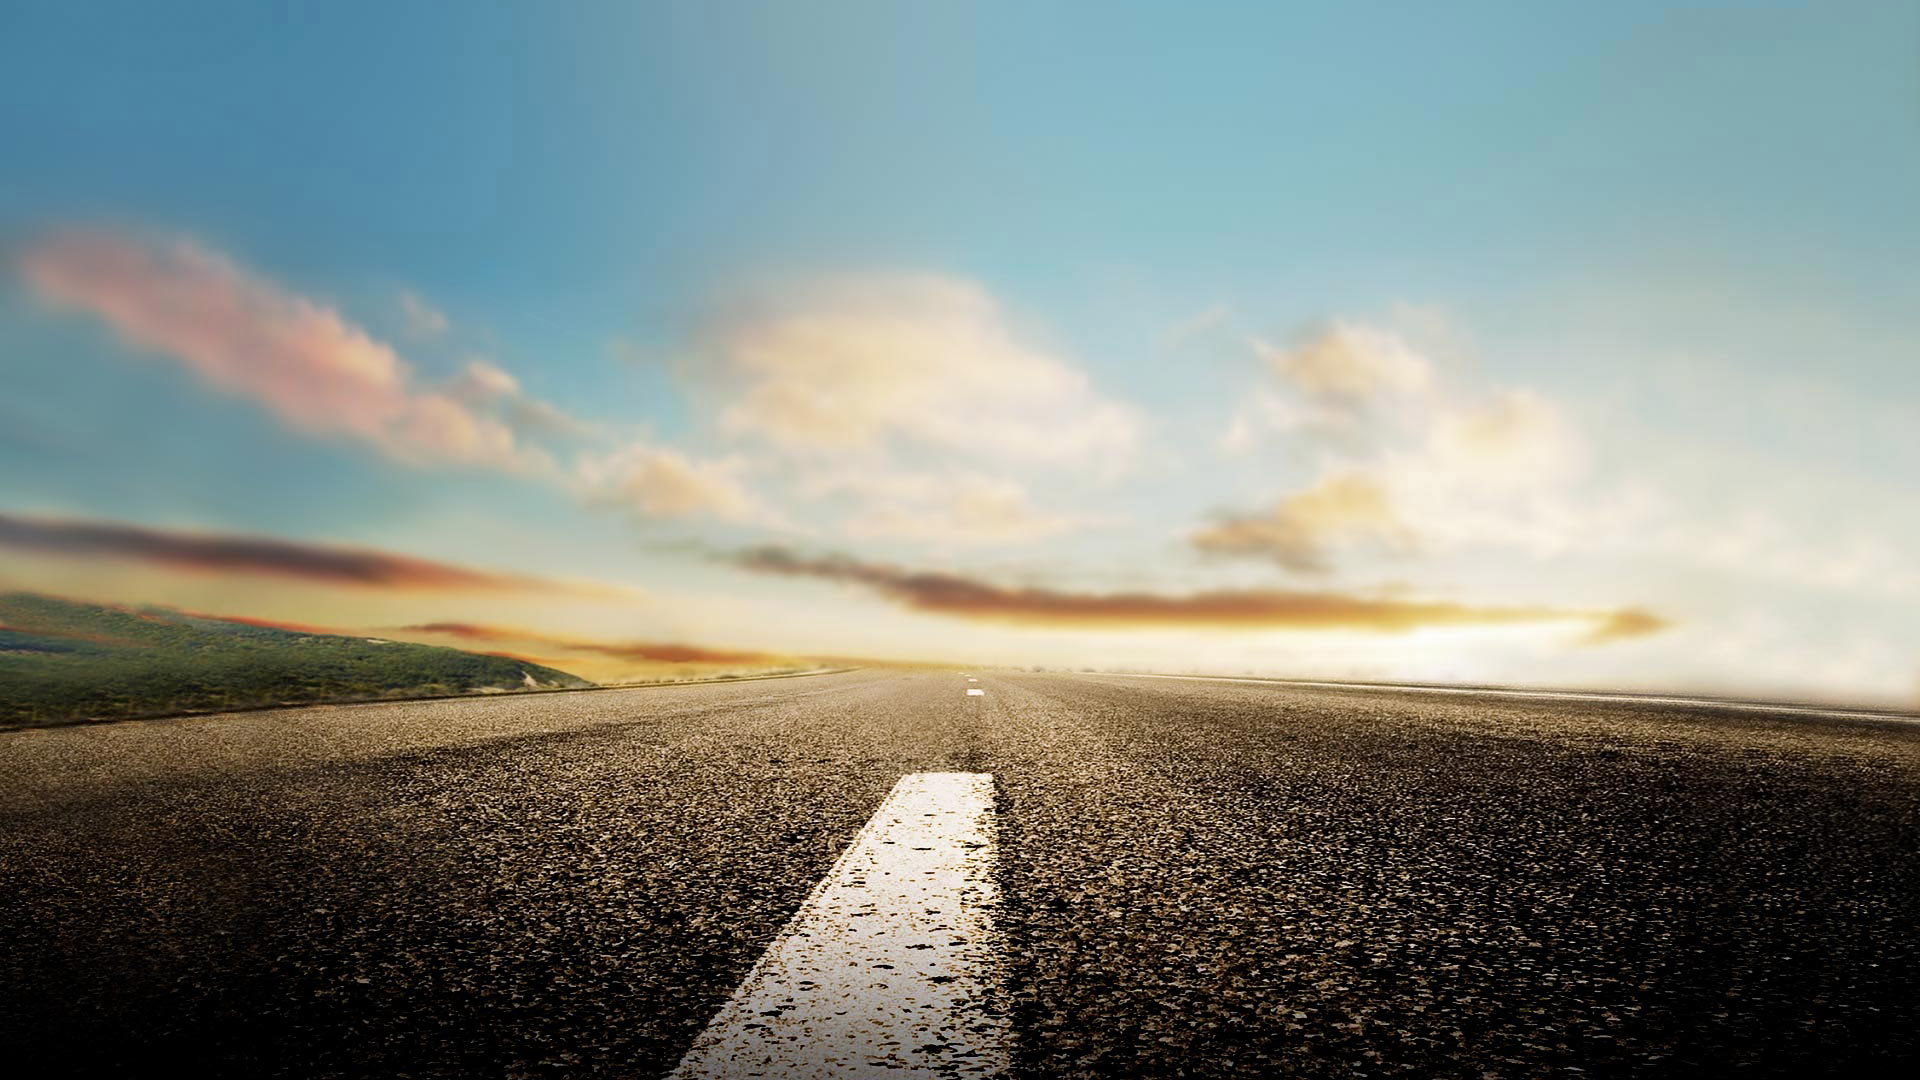 Twitter Backgrounds Background Best Ahead Road 1920x1080